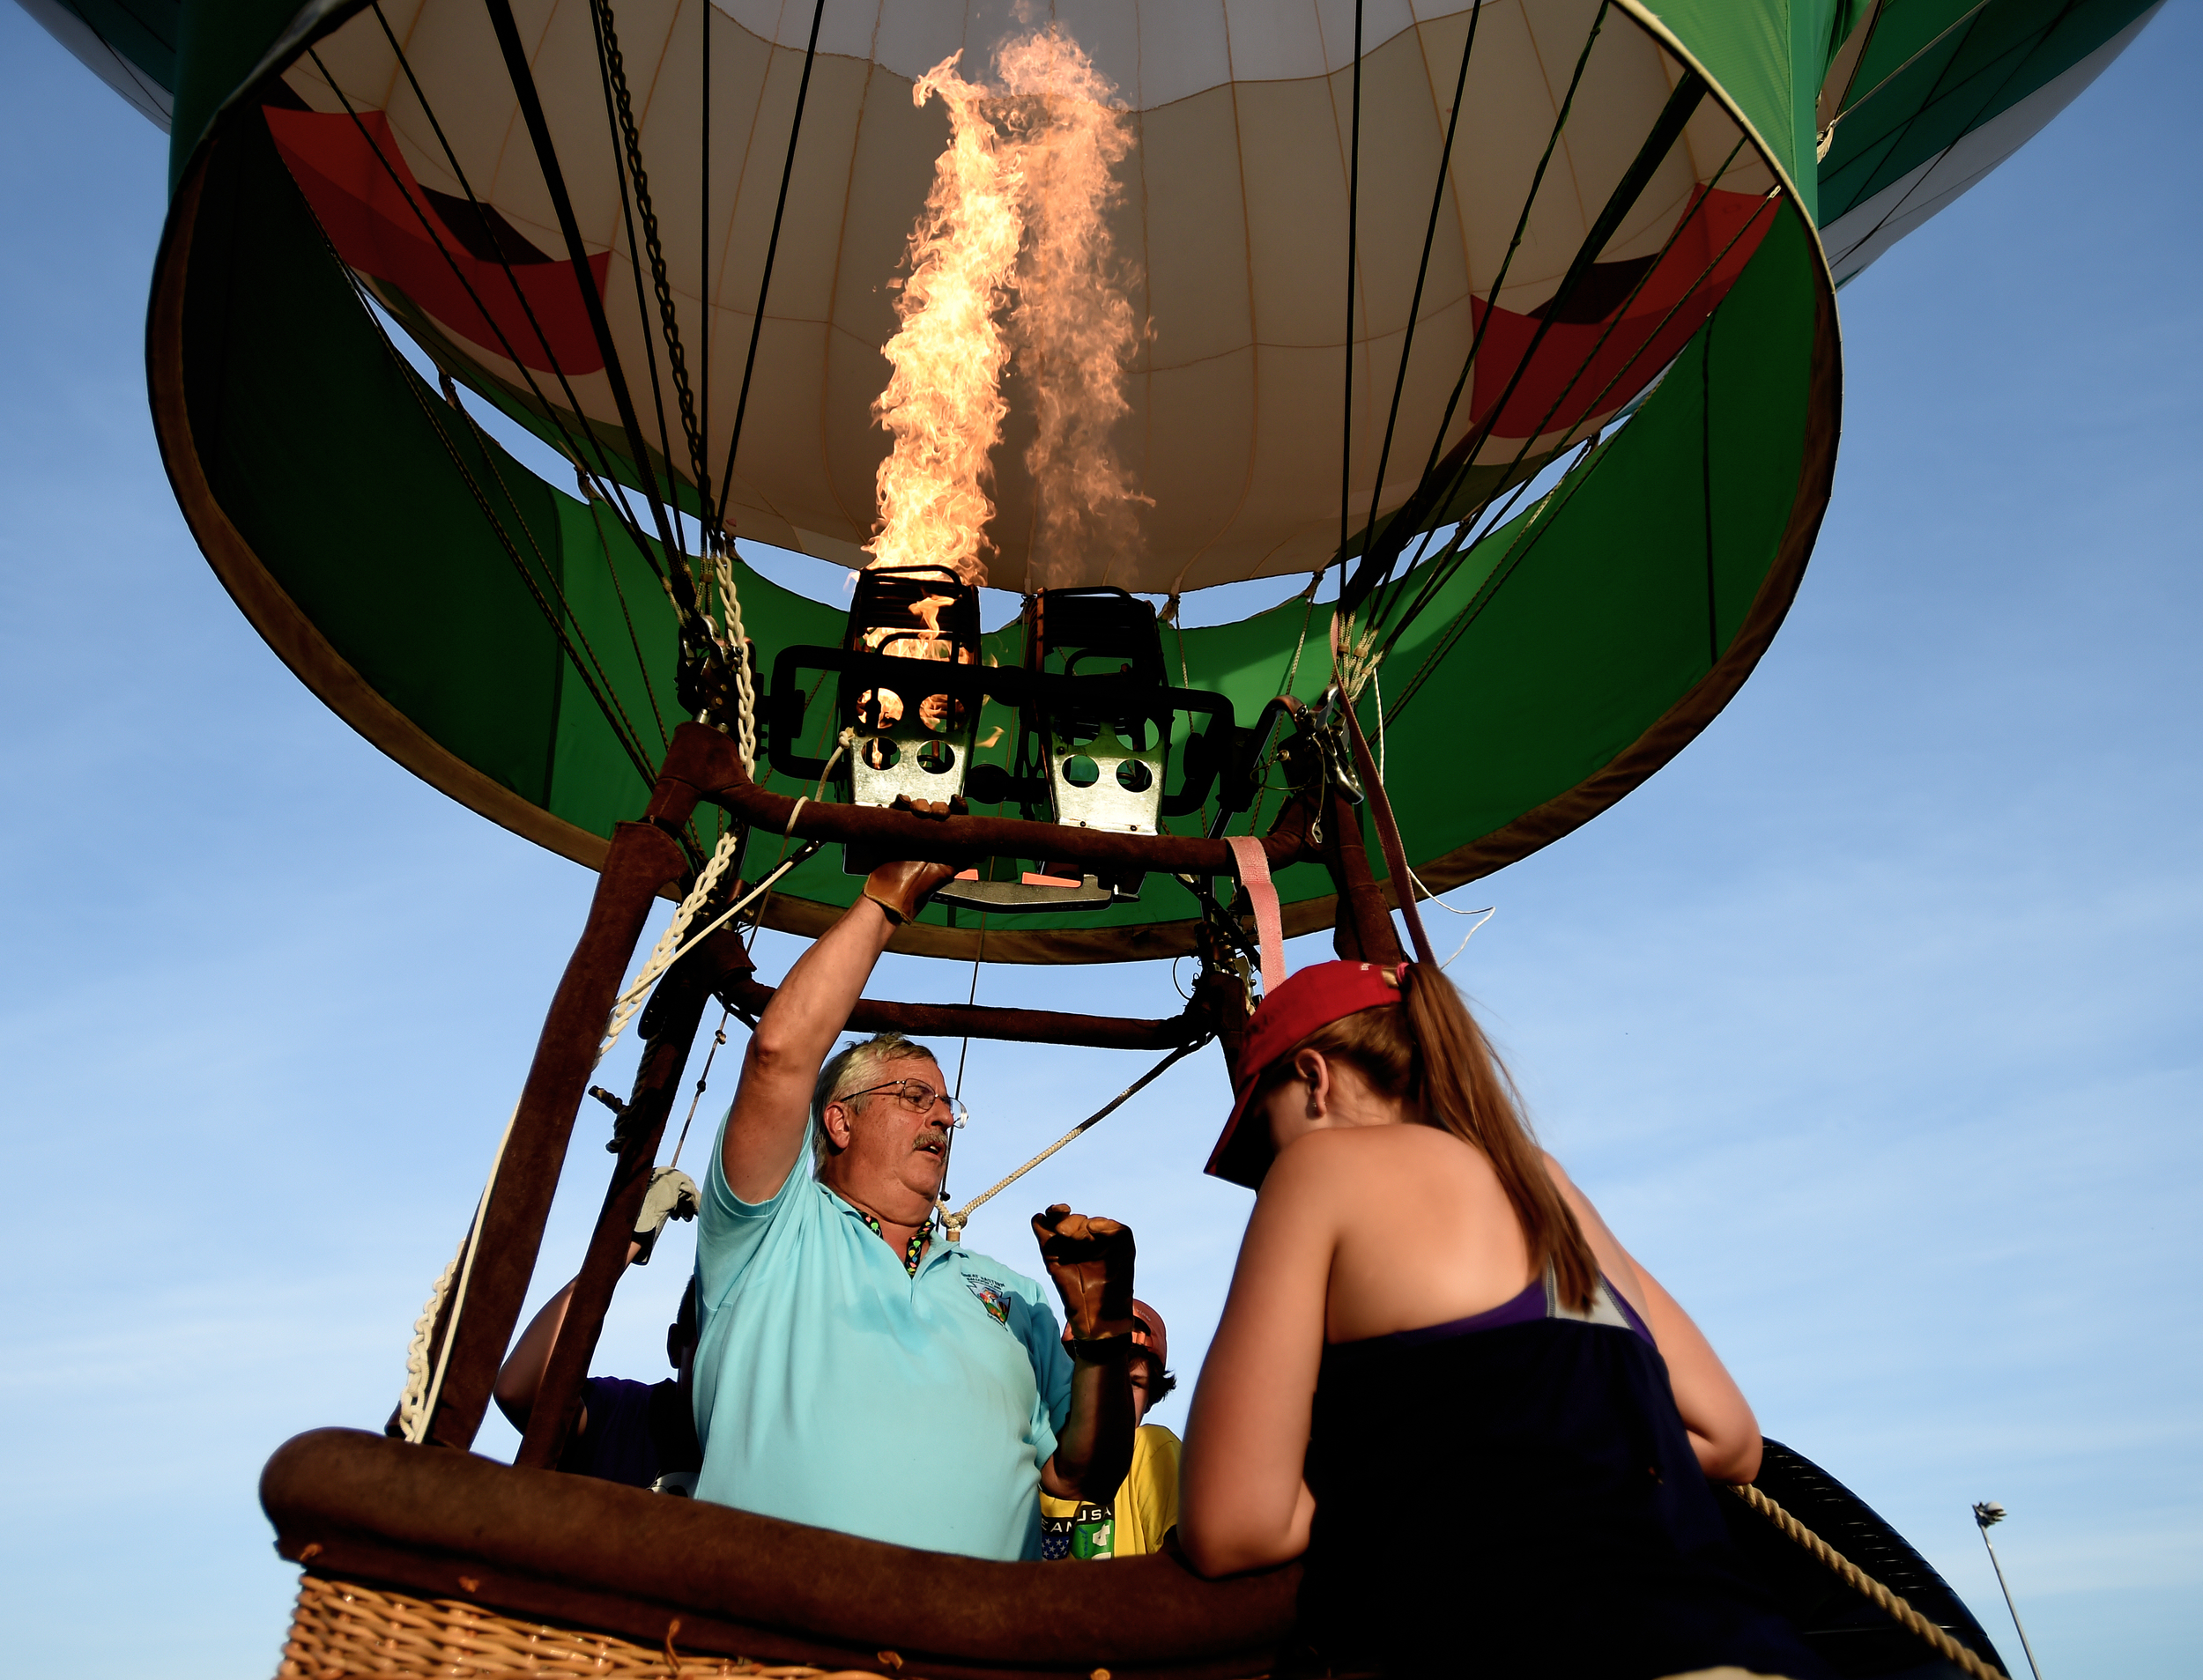 Steve Esser of Kutztown pumps hot air into his balloon during the Great Eastern Balloon Camp at Kutztown University in Kutztown, PA, on July 11, 2016. The balloon camp teaches youngsters the basics of flying hot balloons. (Reading Eagle: Sarah Stier)